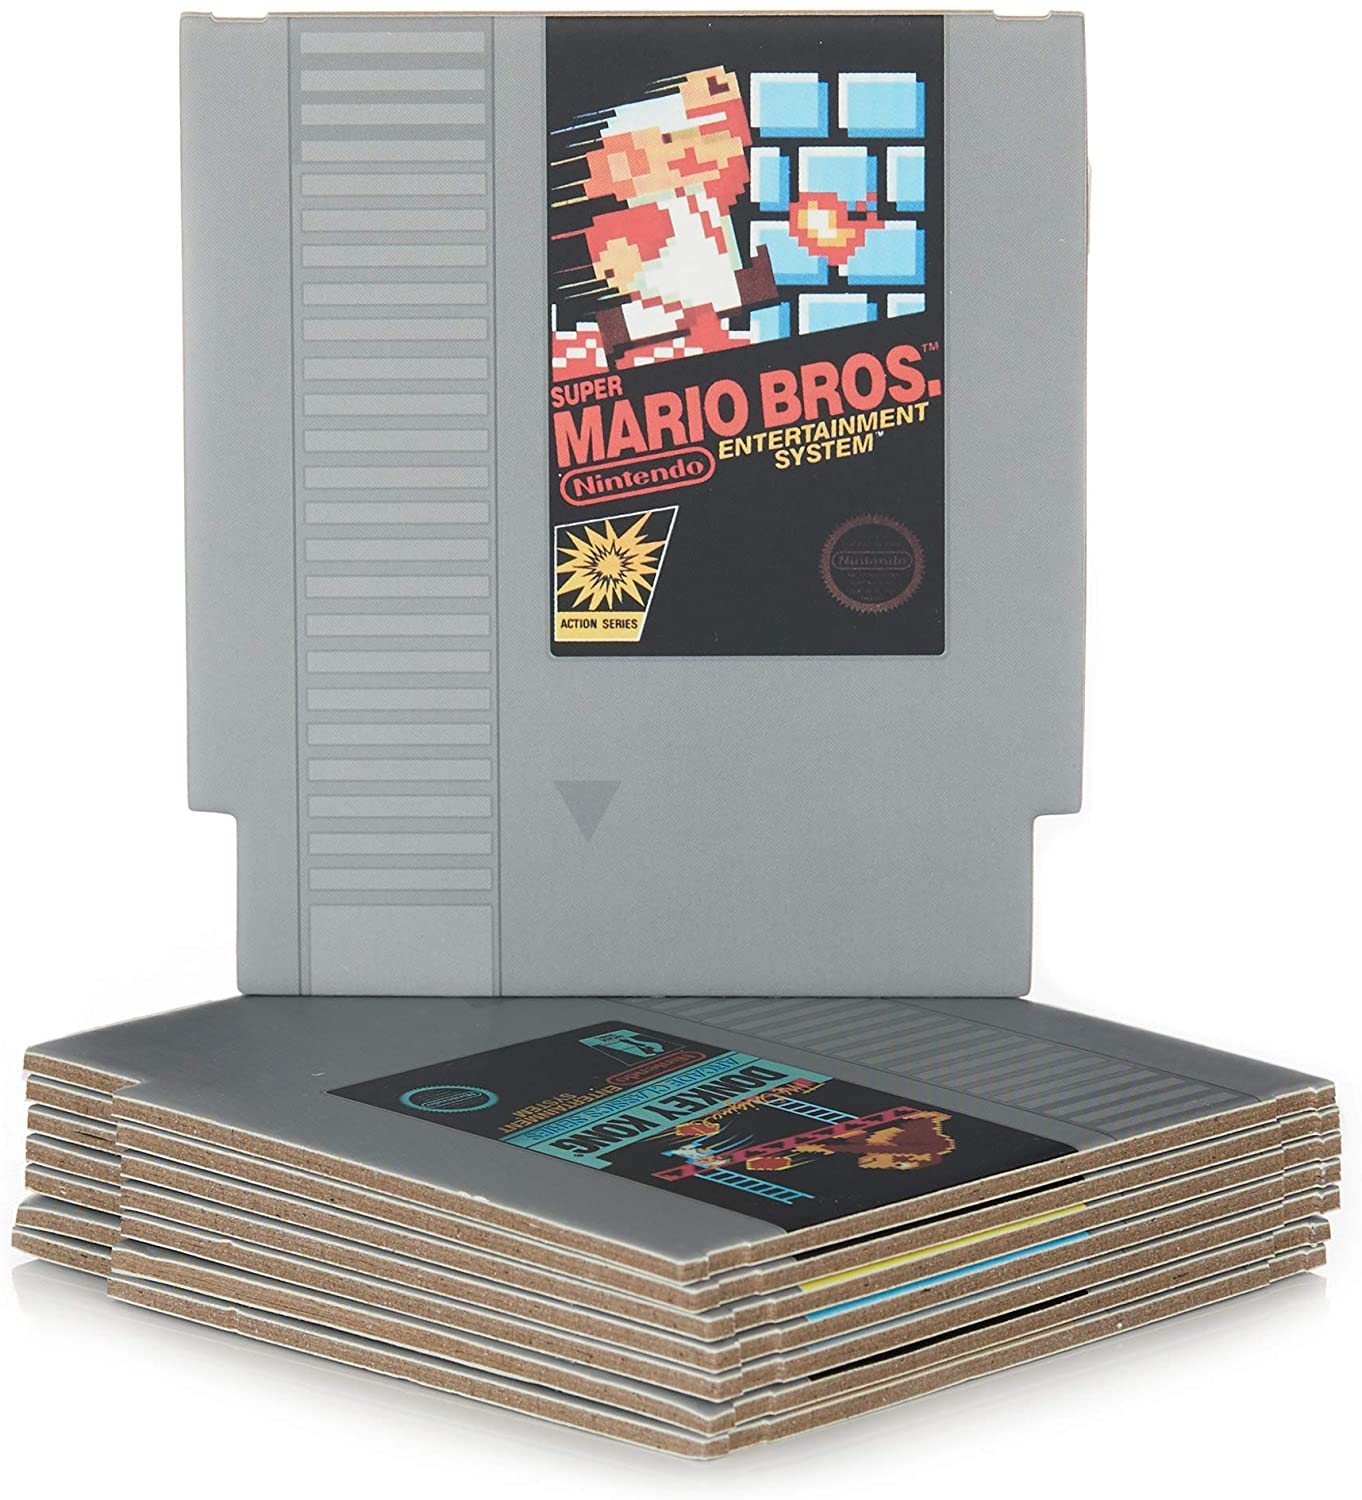 Retro NES Cartridge Coasters for Drinks | Classic Nintendo Video Game Room Decor